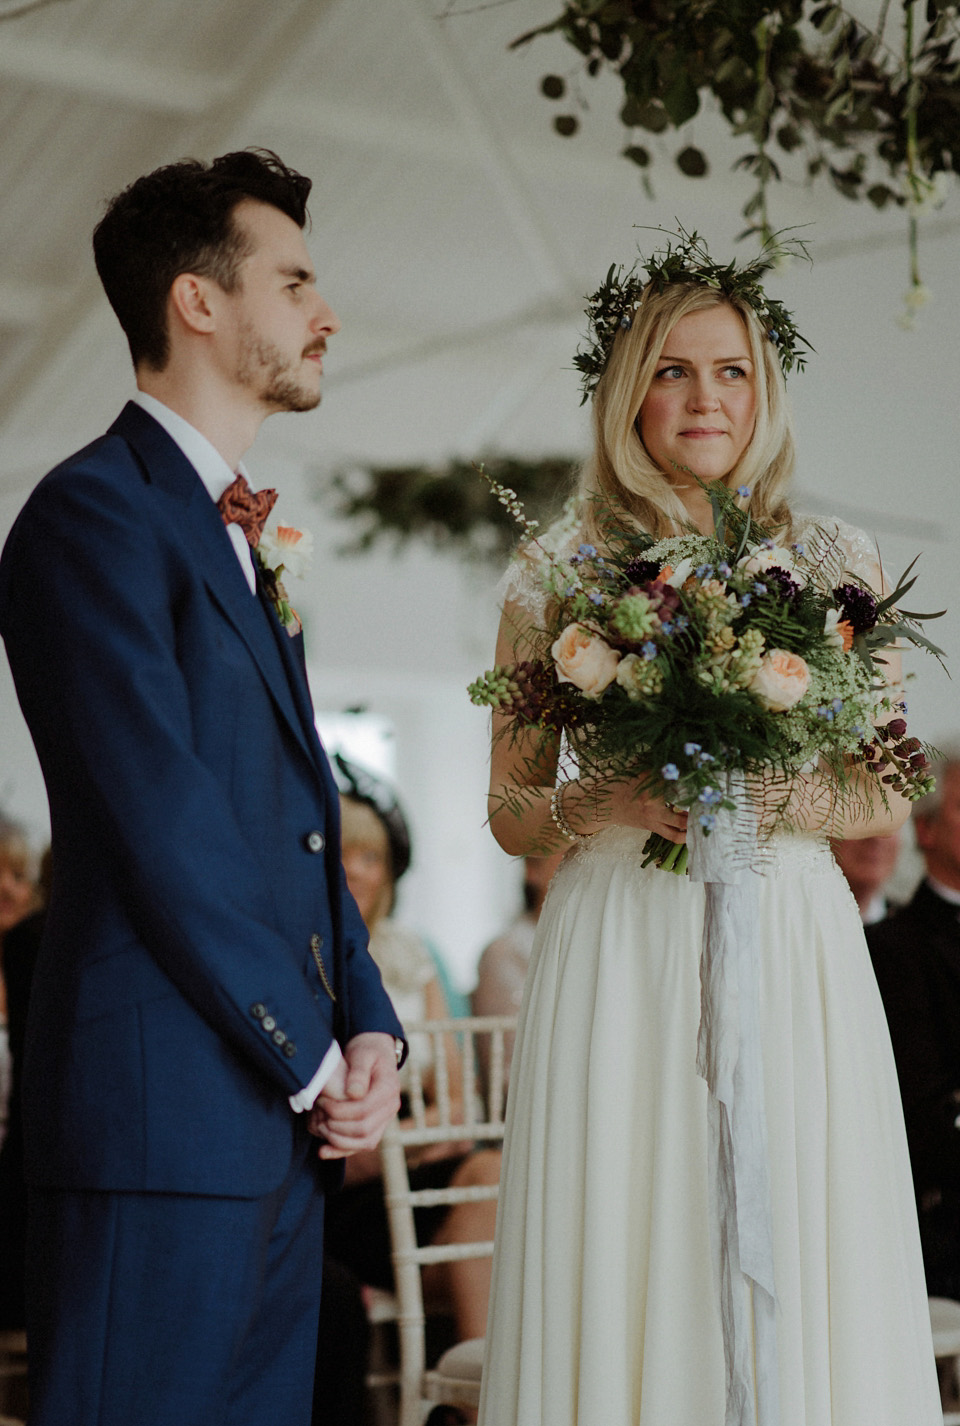 An Exquisite Natural World Inspired Wedding in Shades of Sea Glass Green (Films Weddings )